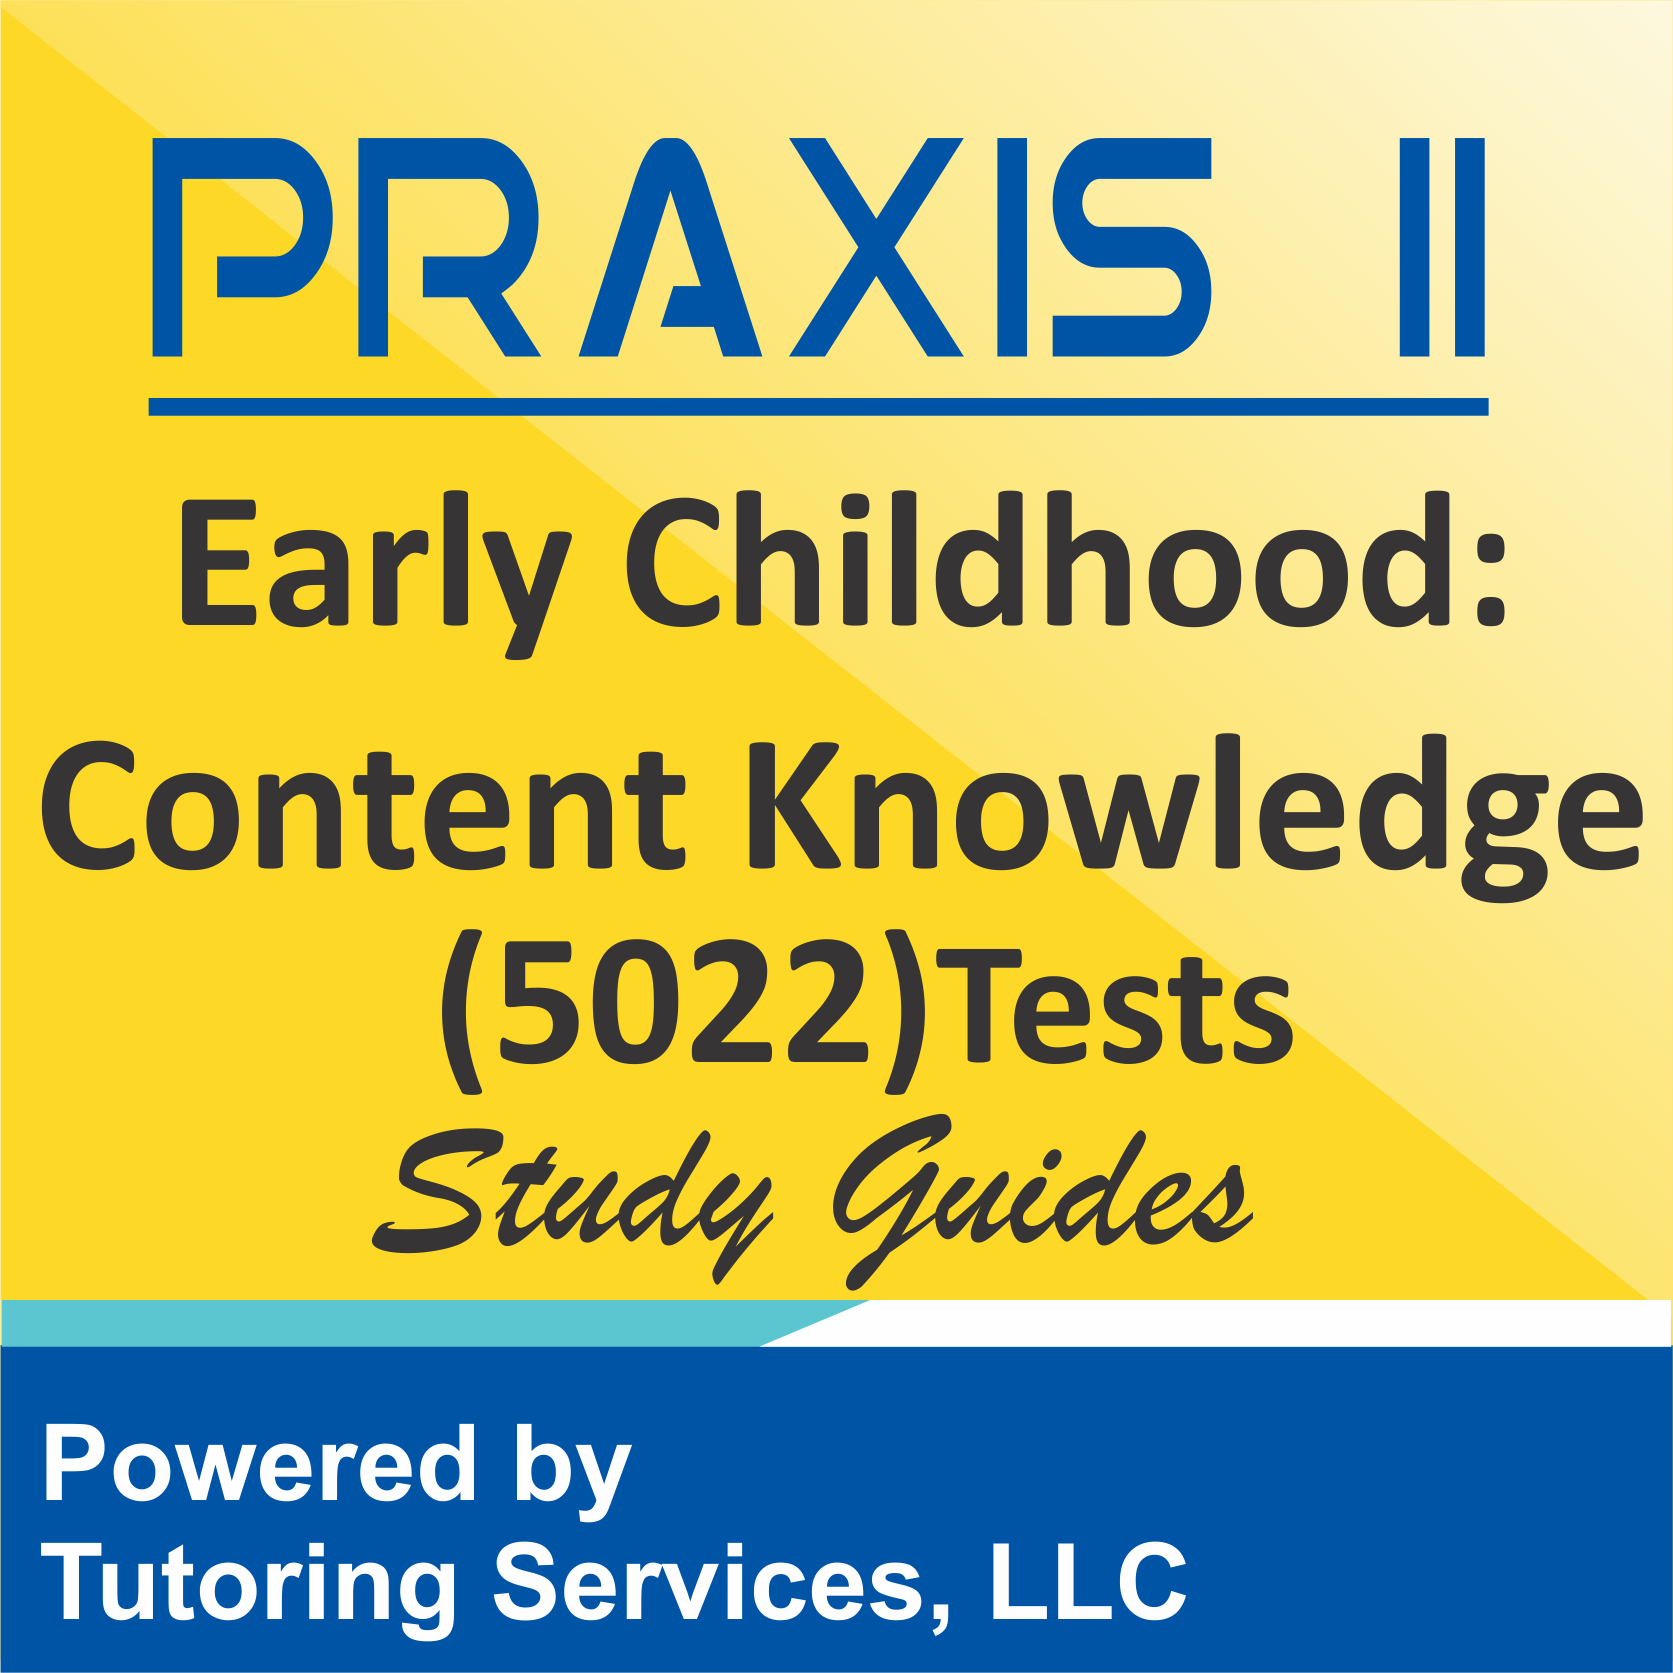 Praxis II Early Childhood: Content Knowledge (5022) Examination Format